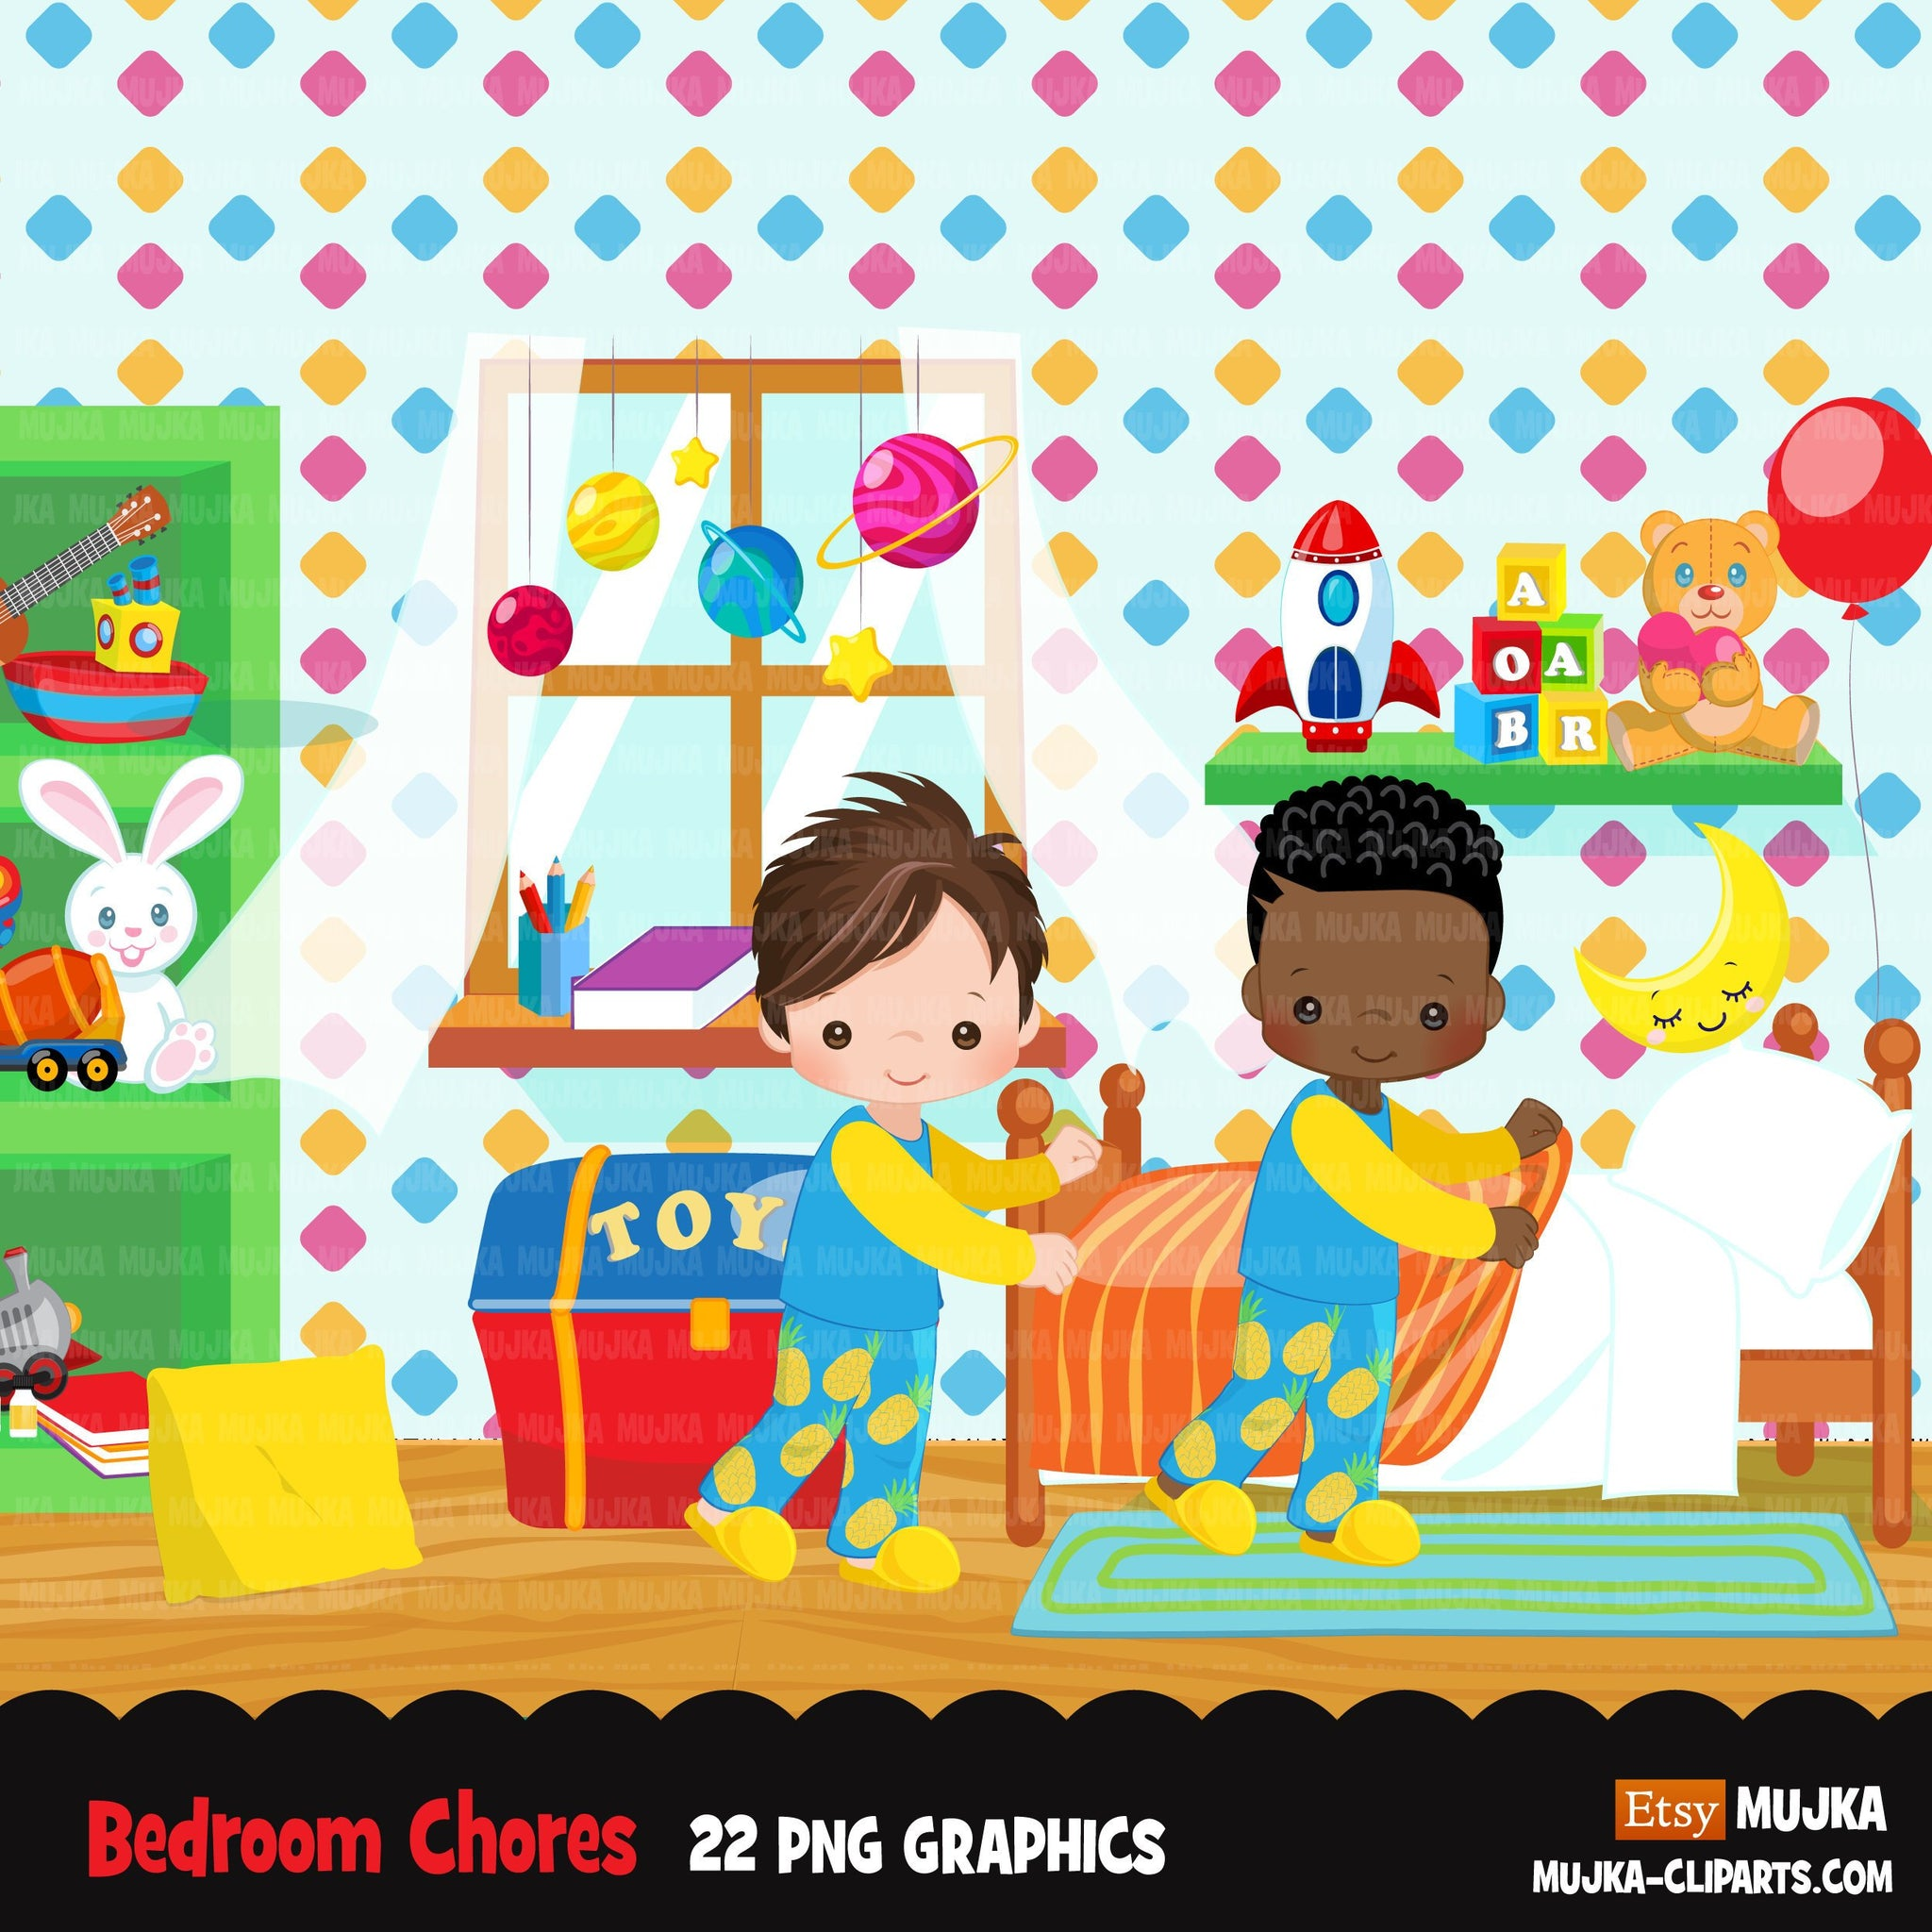 Chores Clipart, bedroom chores, making bed, children's room sublimation graphics, black boys PNG clip art